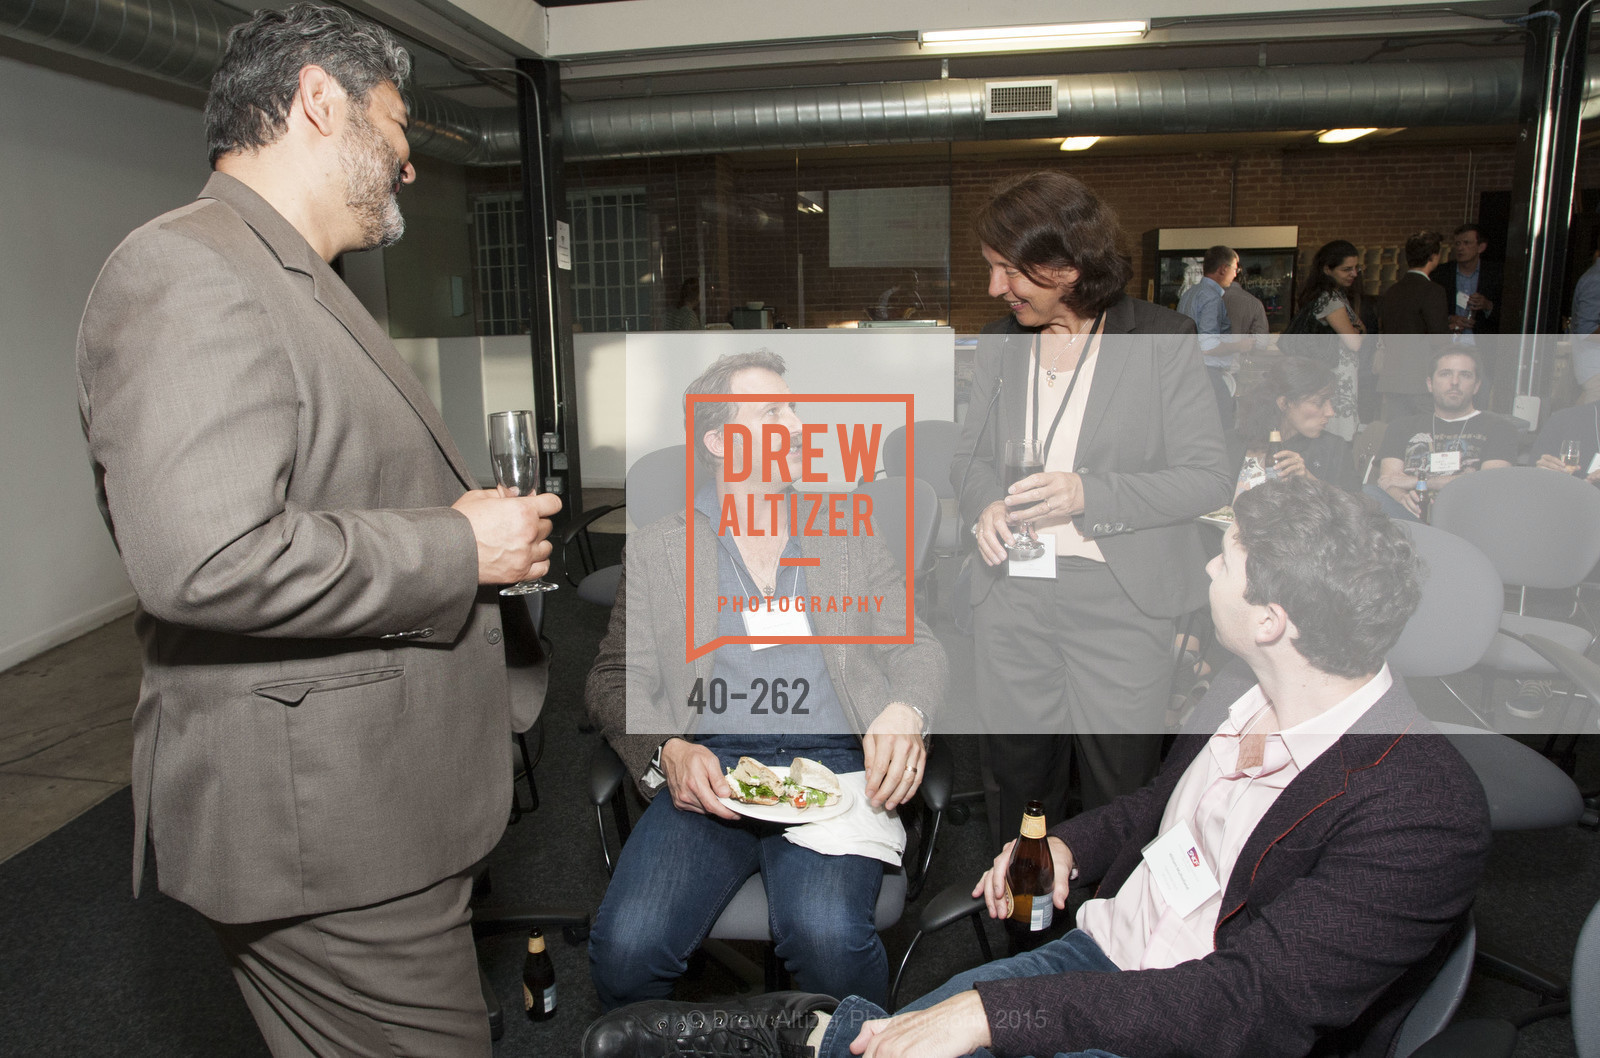 Afshin Pishevar, Brogan BamBrogan, Barbara Dalibard, William Mulholland, Inauguration of SNCF Innovation Lab, 169 11th St, August 26th, 2015,Drew Altizer, Drew Altizer Photography, full-service agency, private events, San Francisco photographer, photographer california